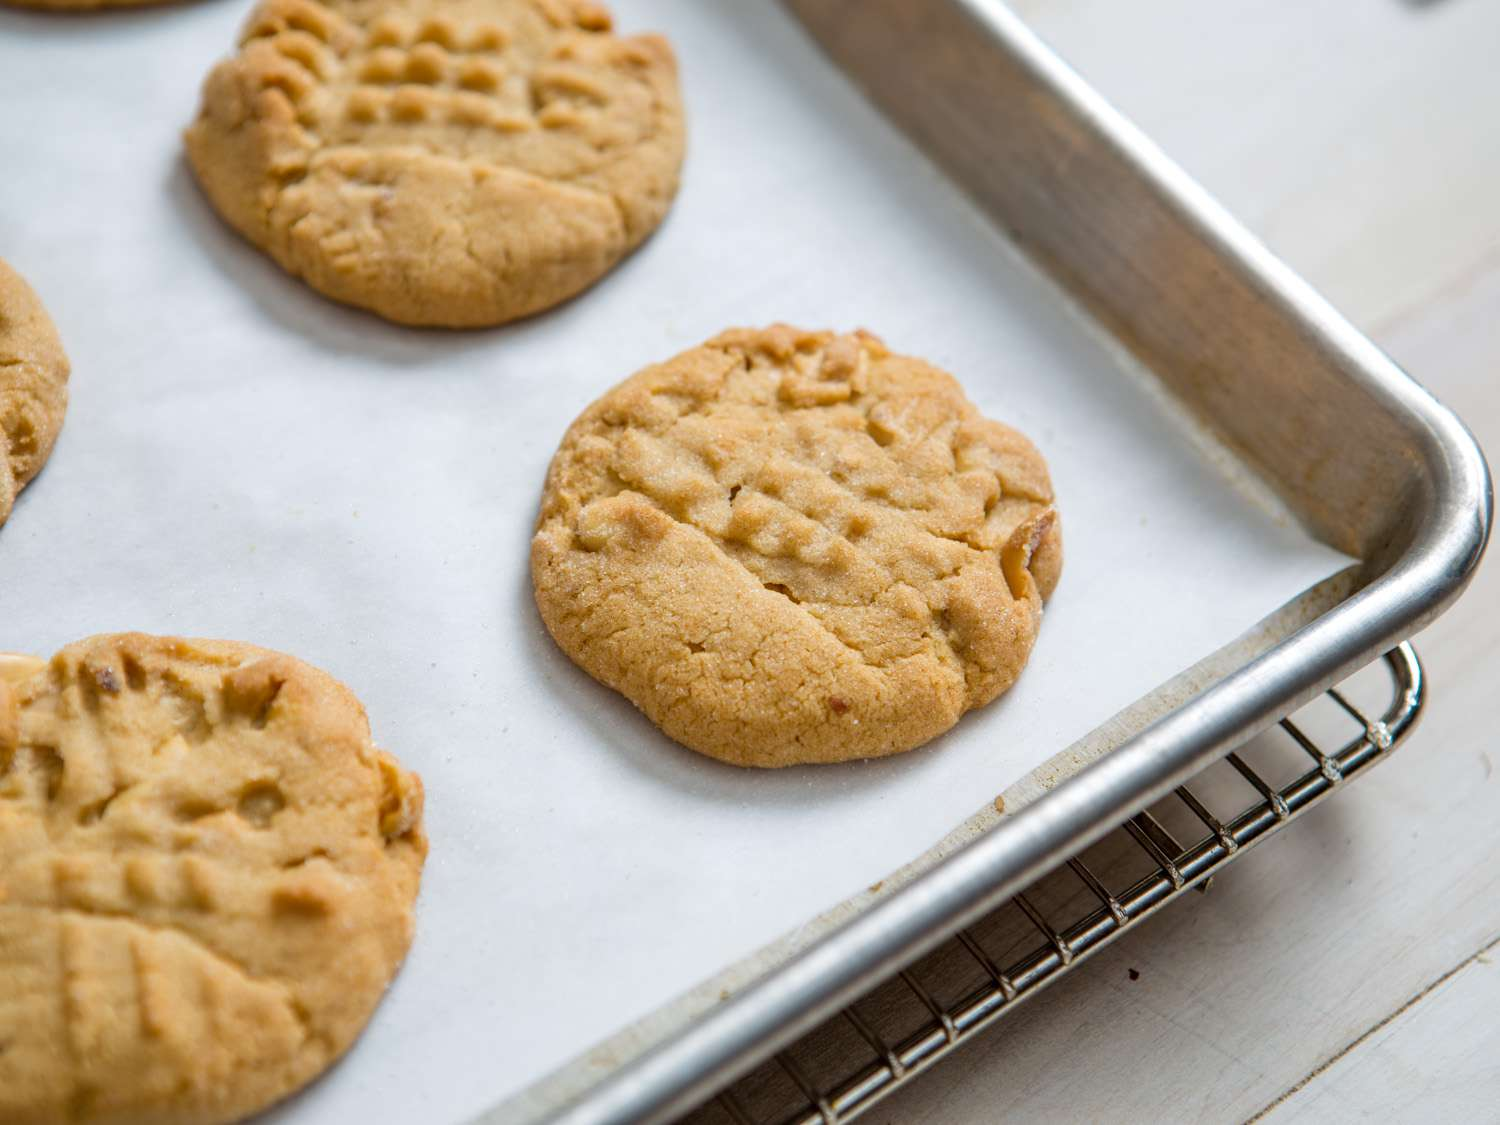 20151111-soft-crunchy-peanut-butter-cookies-vicky-wasik-005.jpg